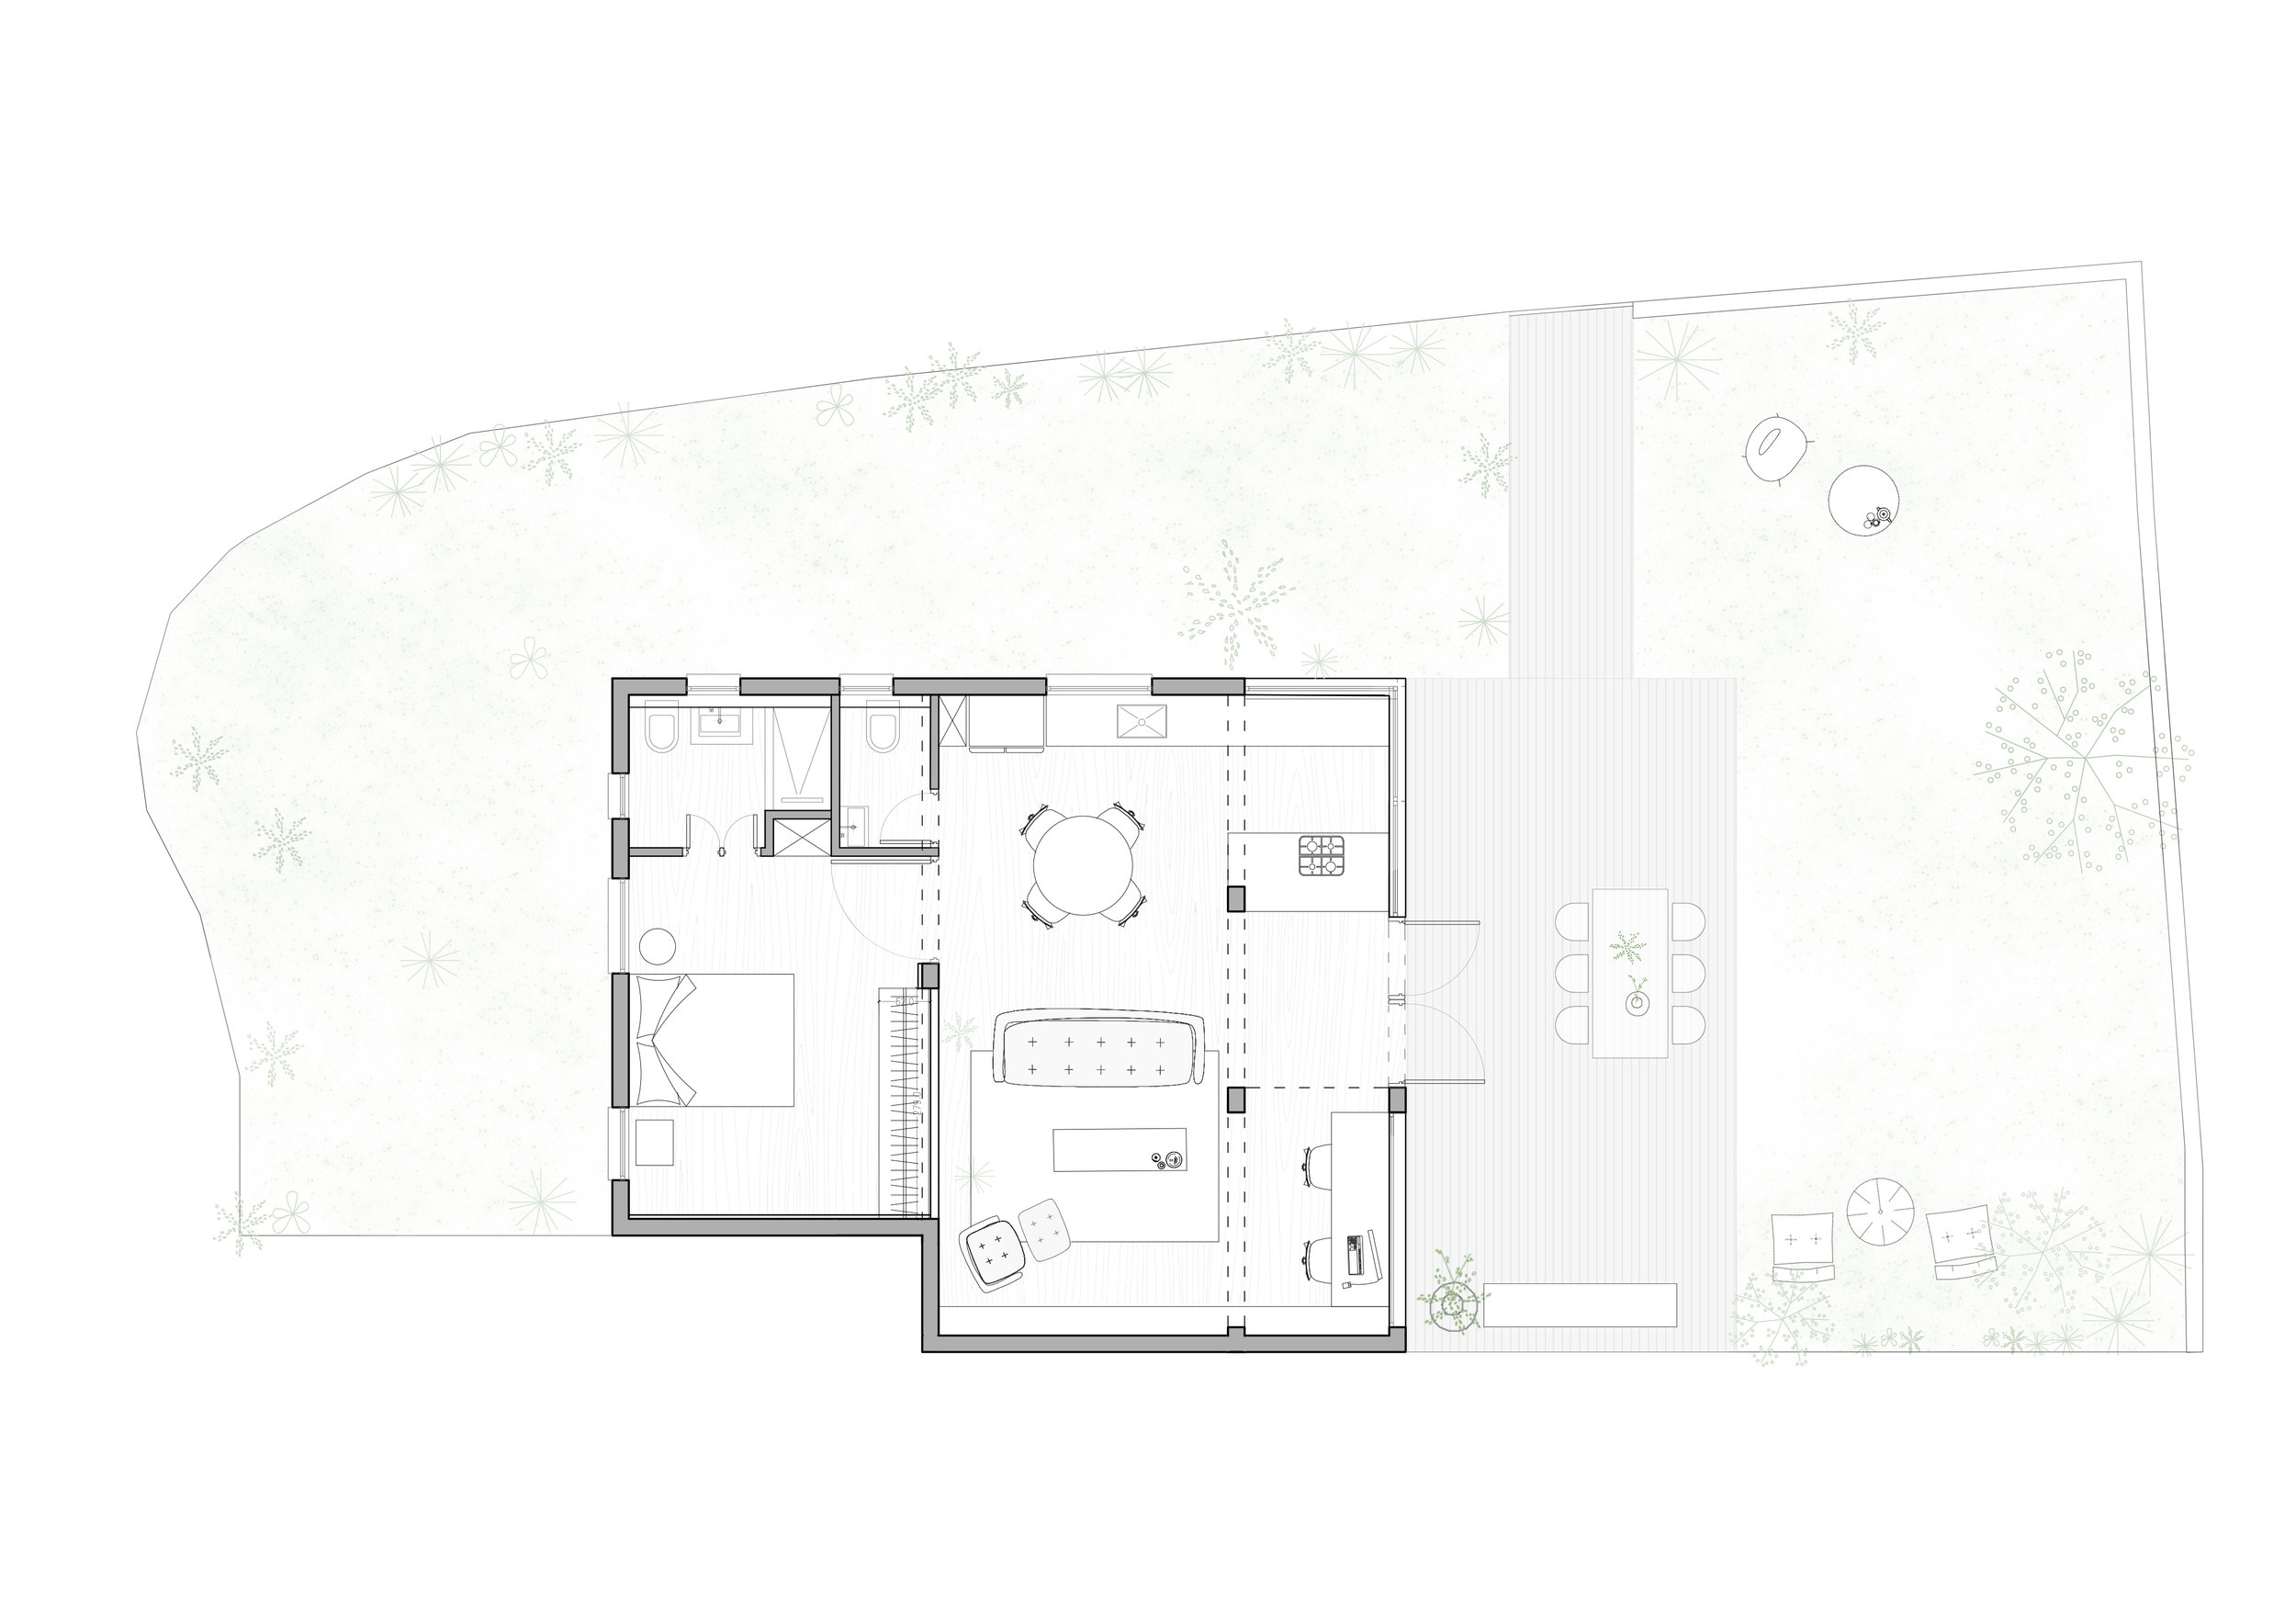 C Studio Apartment by This is IT plan Tel Aviv Jaffa graphic layout